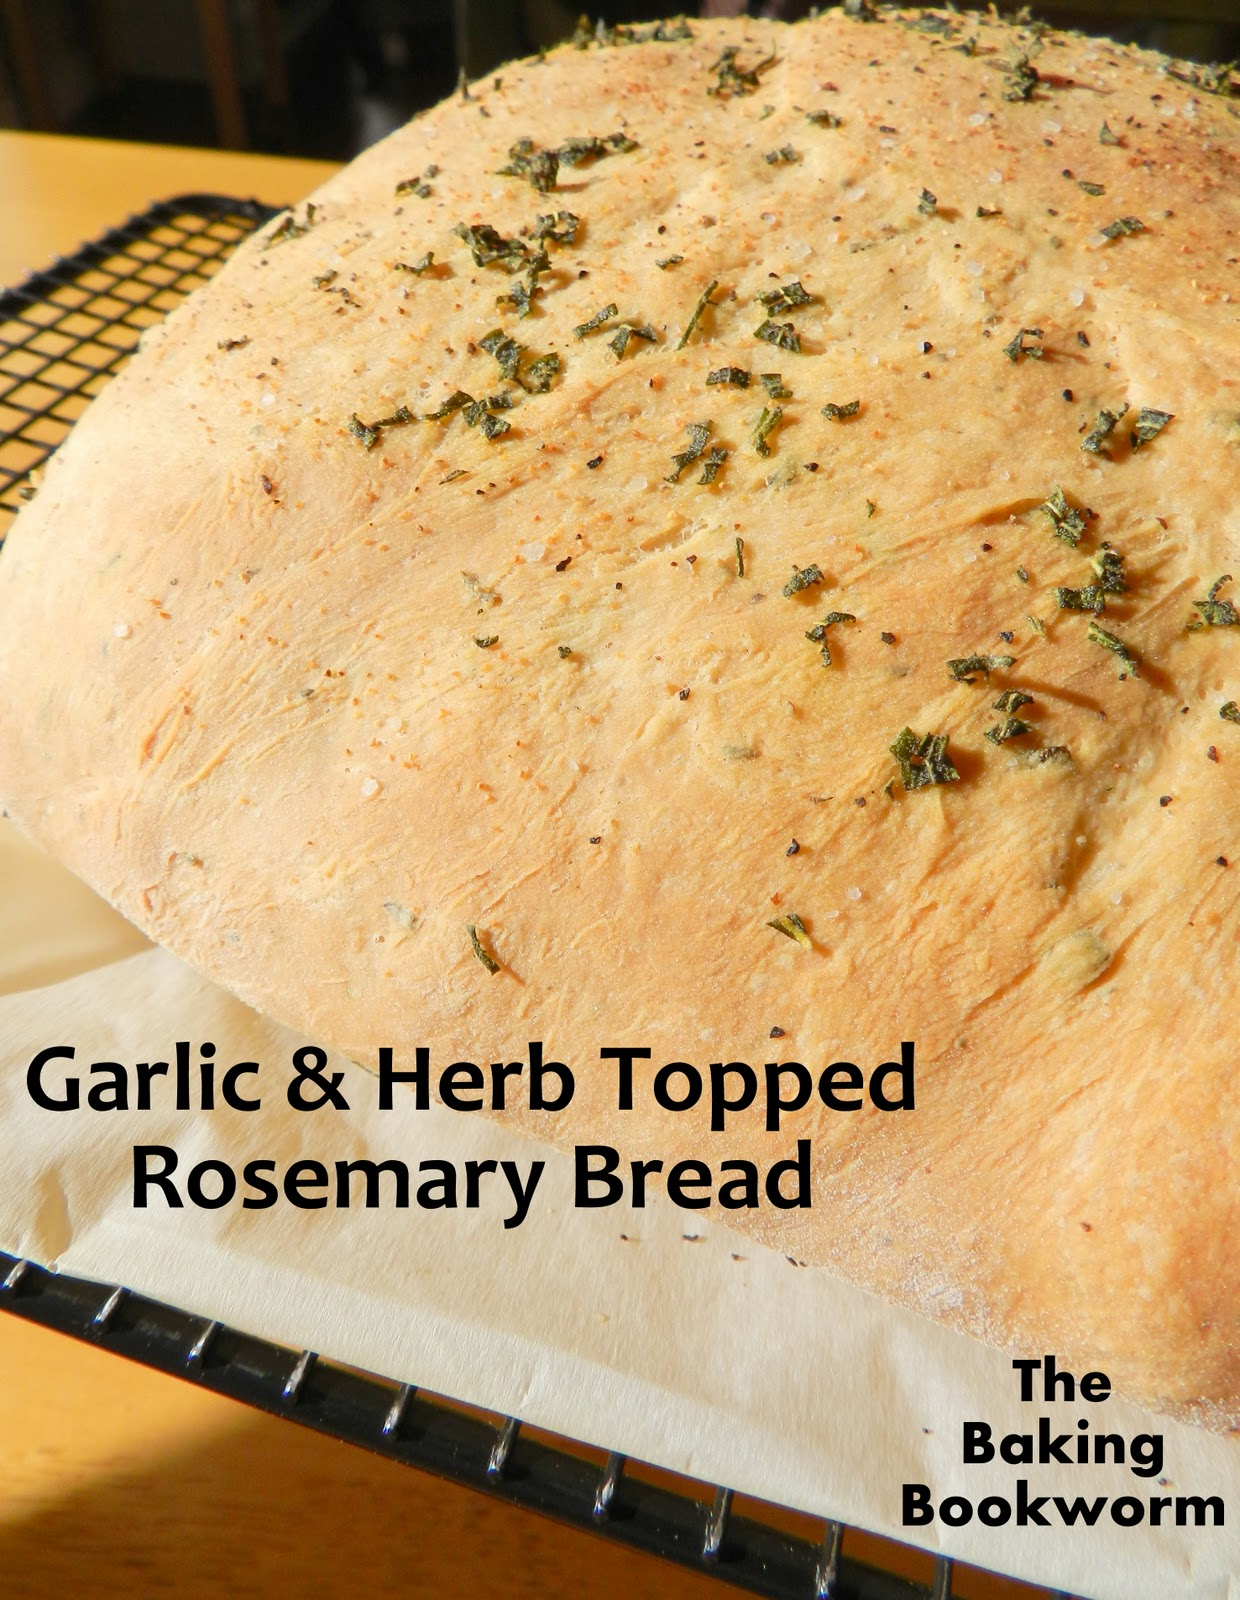 The Baking Bookworm: Garlic & Herb Topped Rosemary Bread